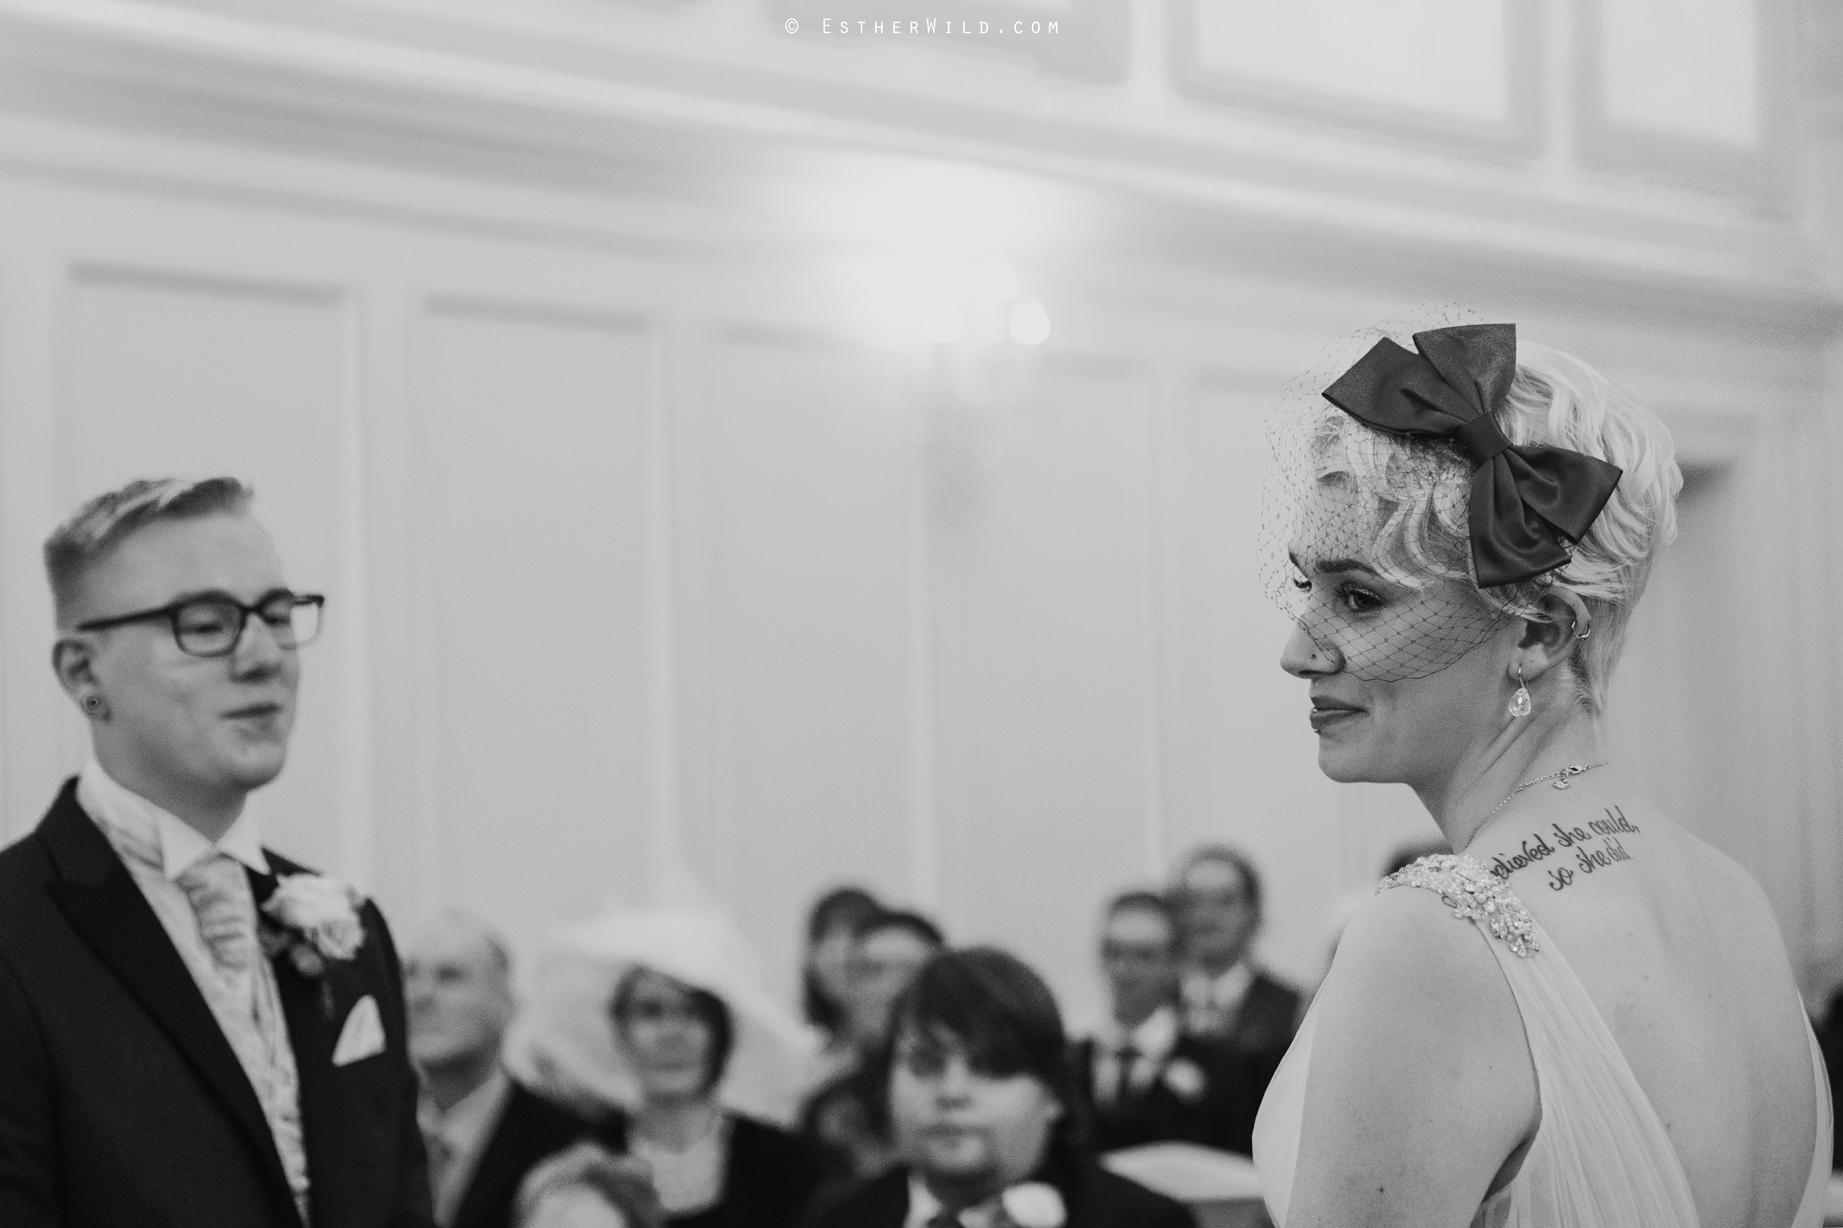 Norwich_Assembly_House_Wedding_Esther_Wild_Photographer_IMG_3883-1.jpg